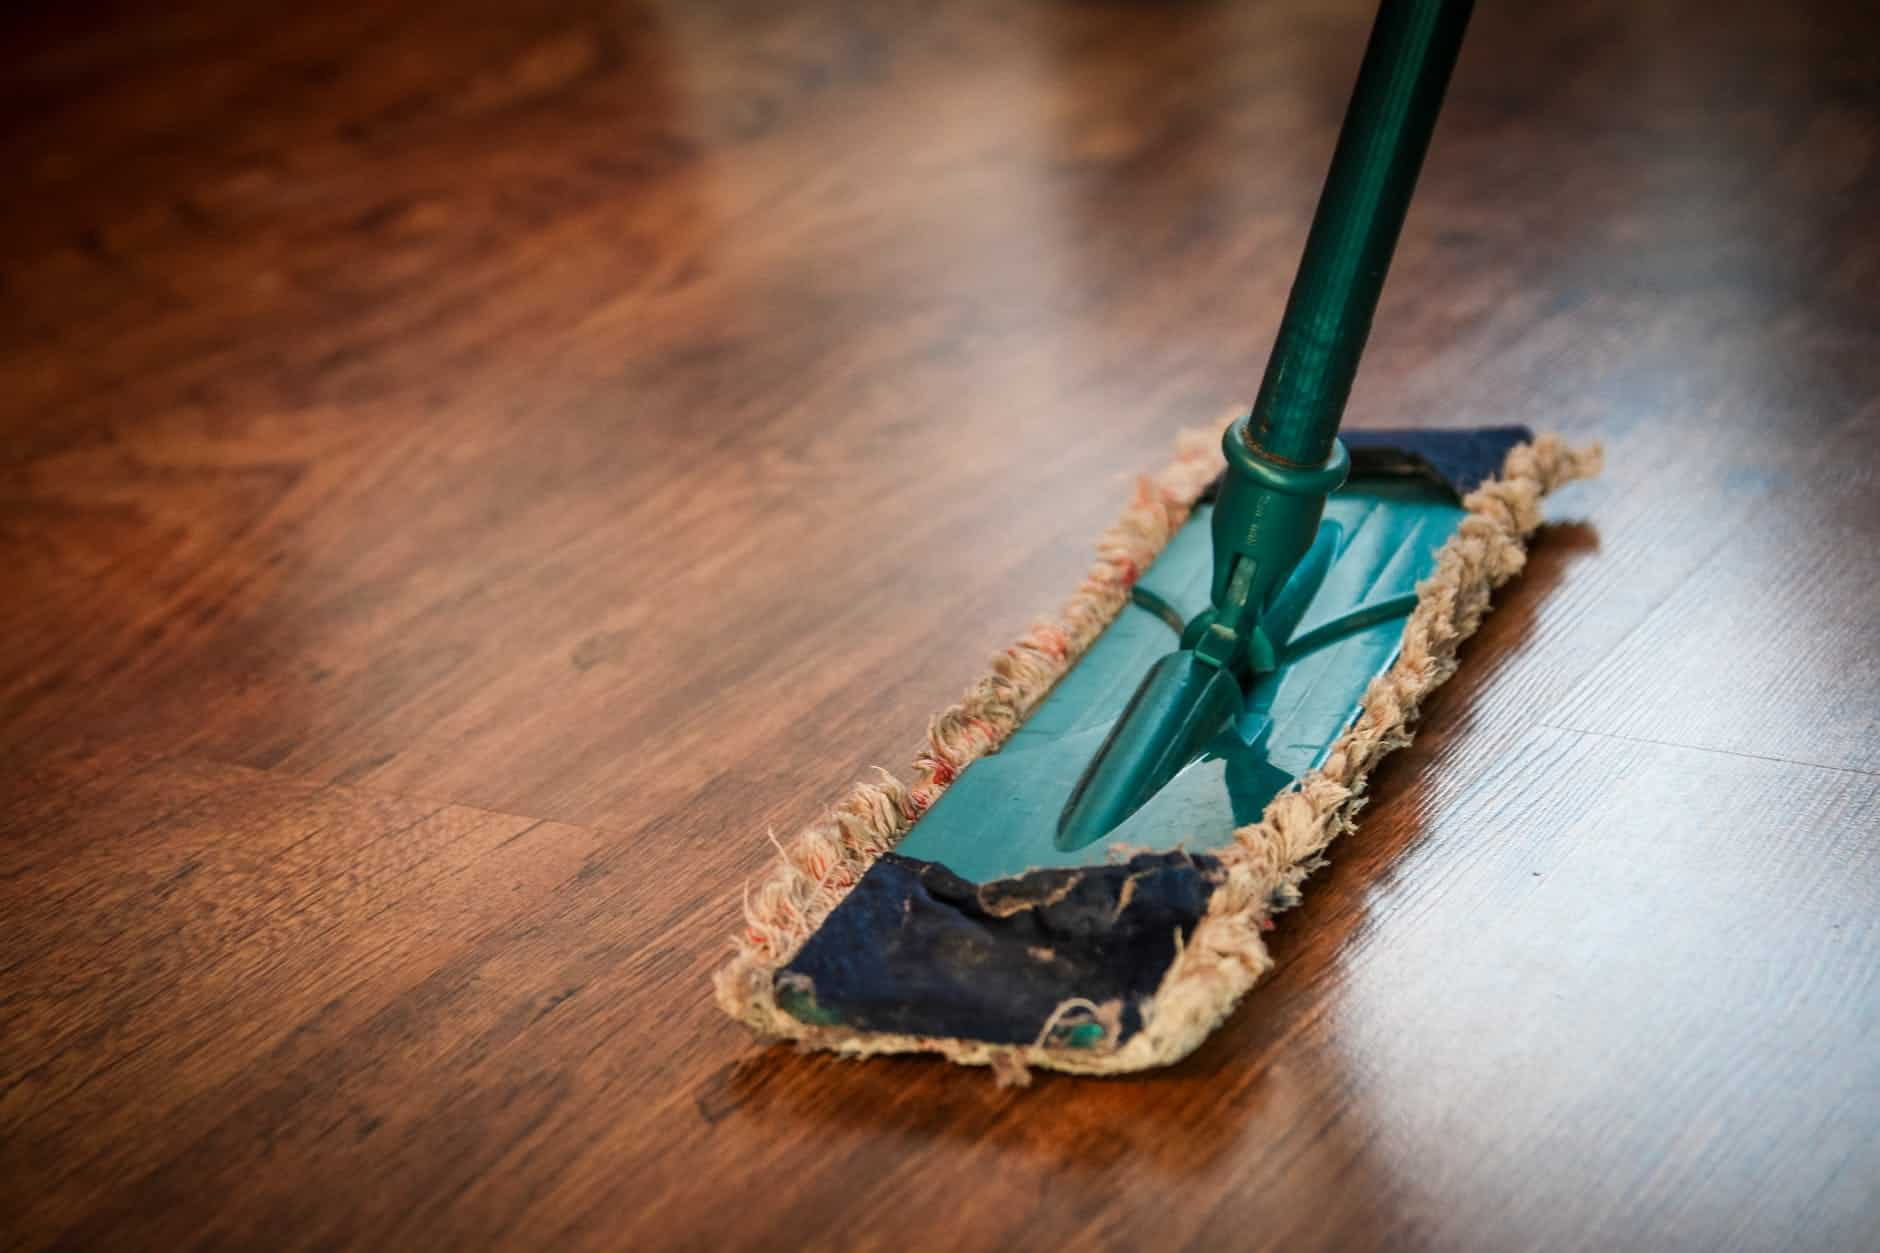 Dust Cleaners: Different Sizes With the Same Purpose